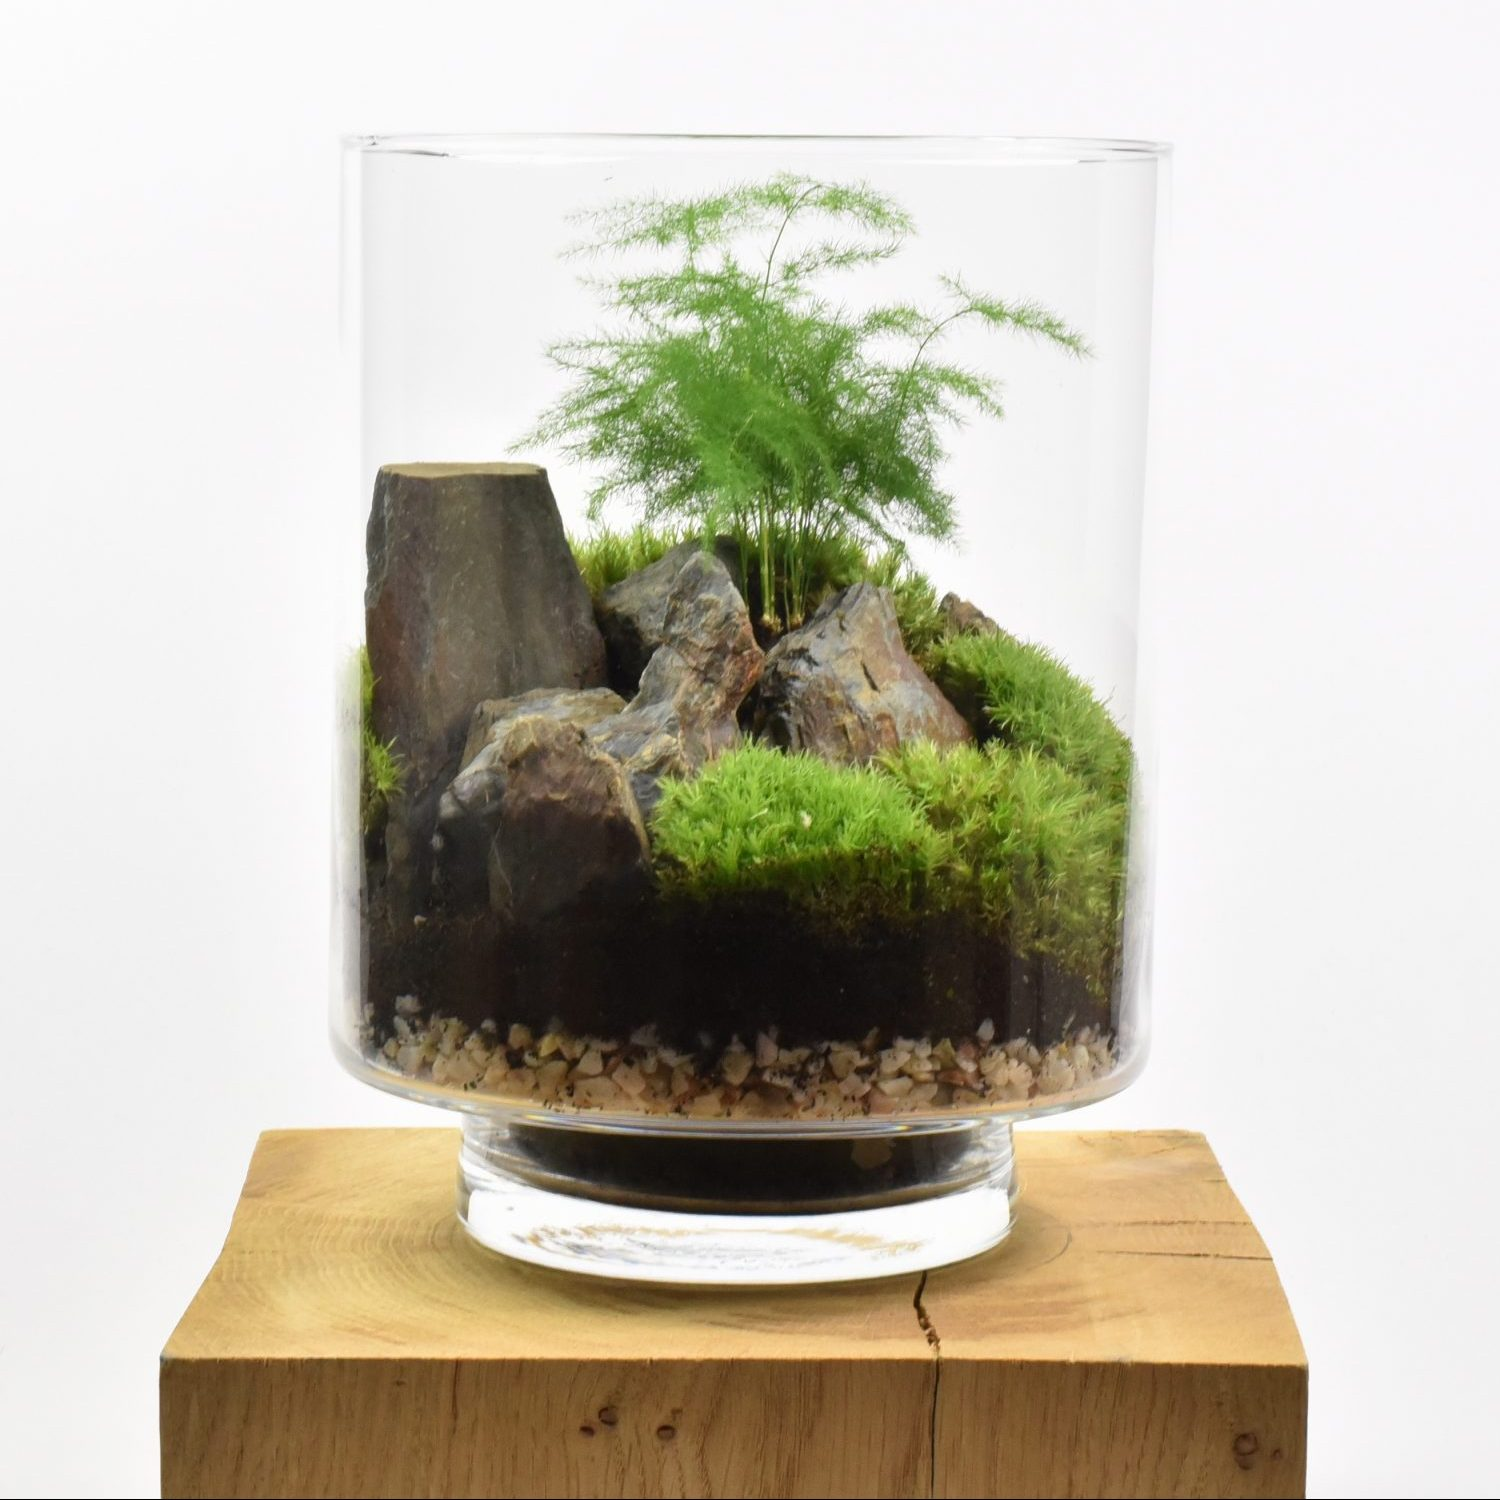 le terrarium original en kit faire soi m me par yamayama. Black Bedroom Furniture Sets. Home Design Ideas